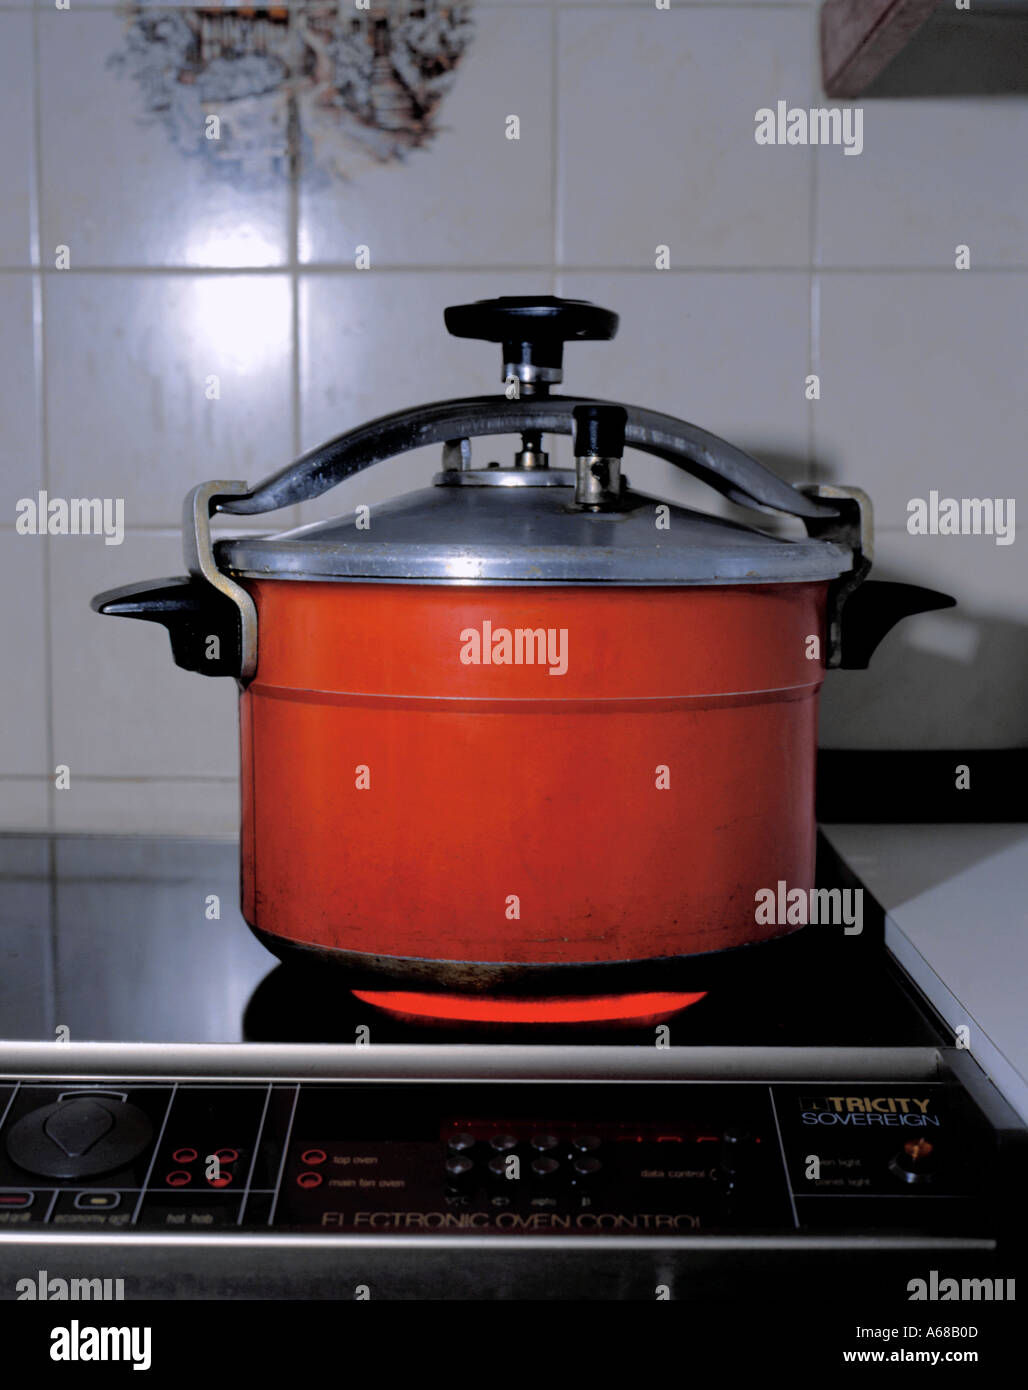 Anodised aluminium pressure cooker on a halogen hob. - Stock Image